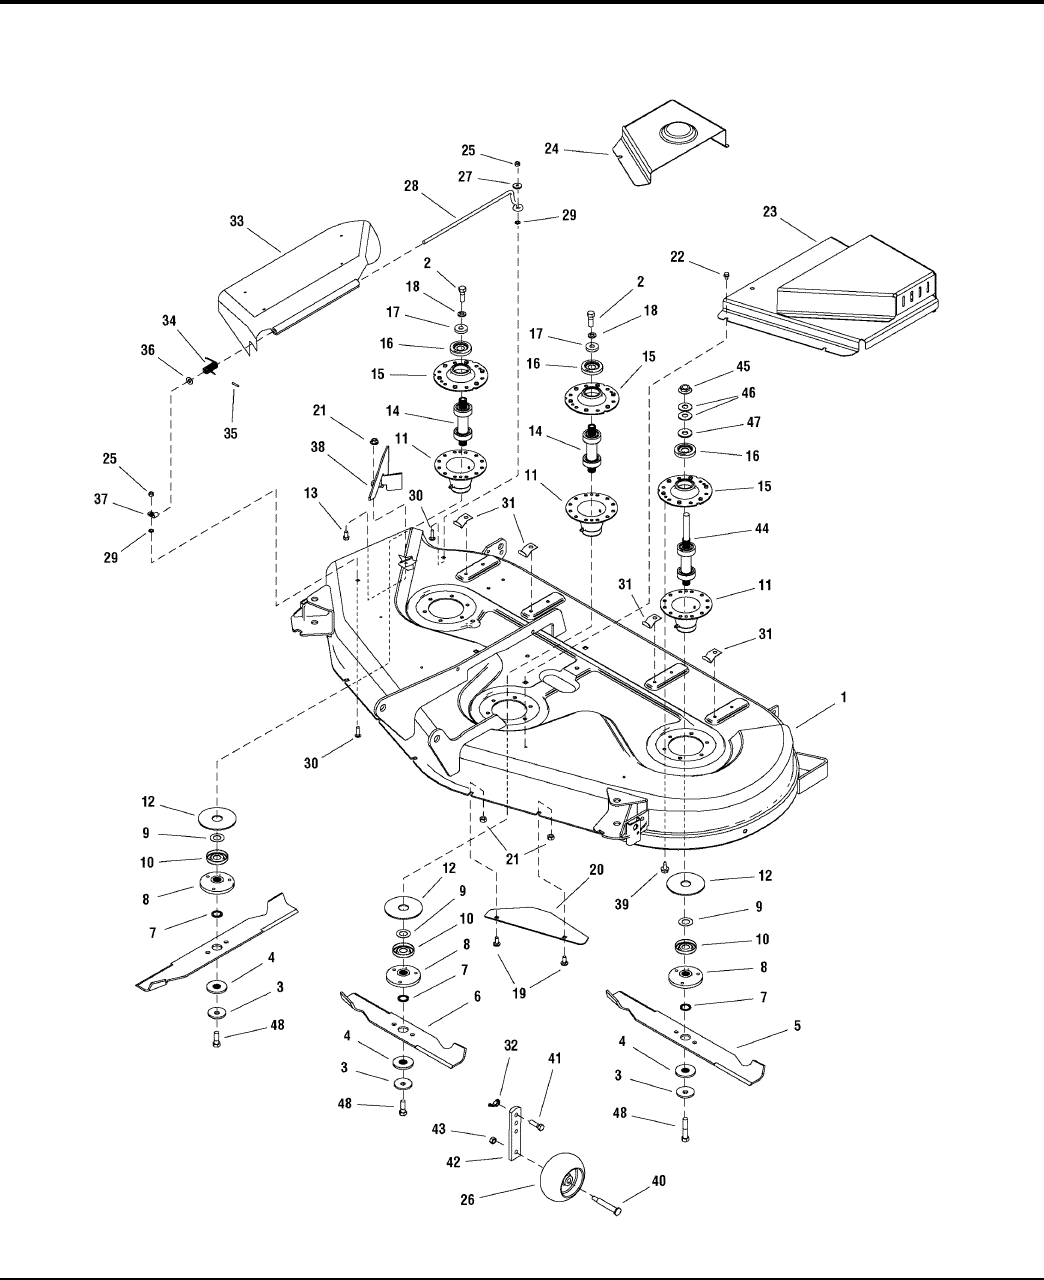 Page 62 of Simplicity Lawn Mower 2690680 User Guide